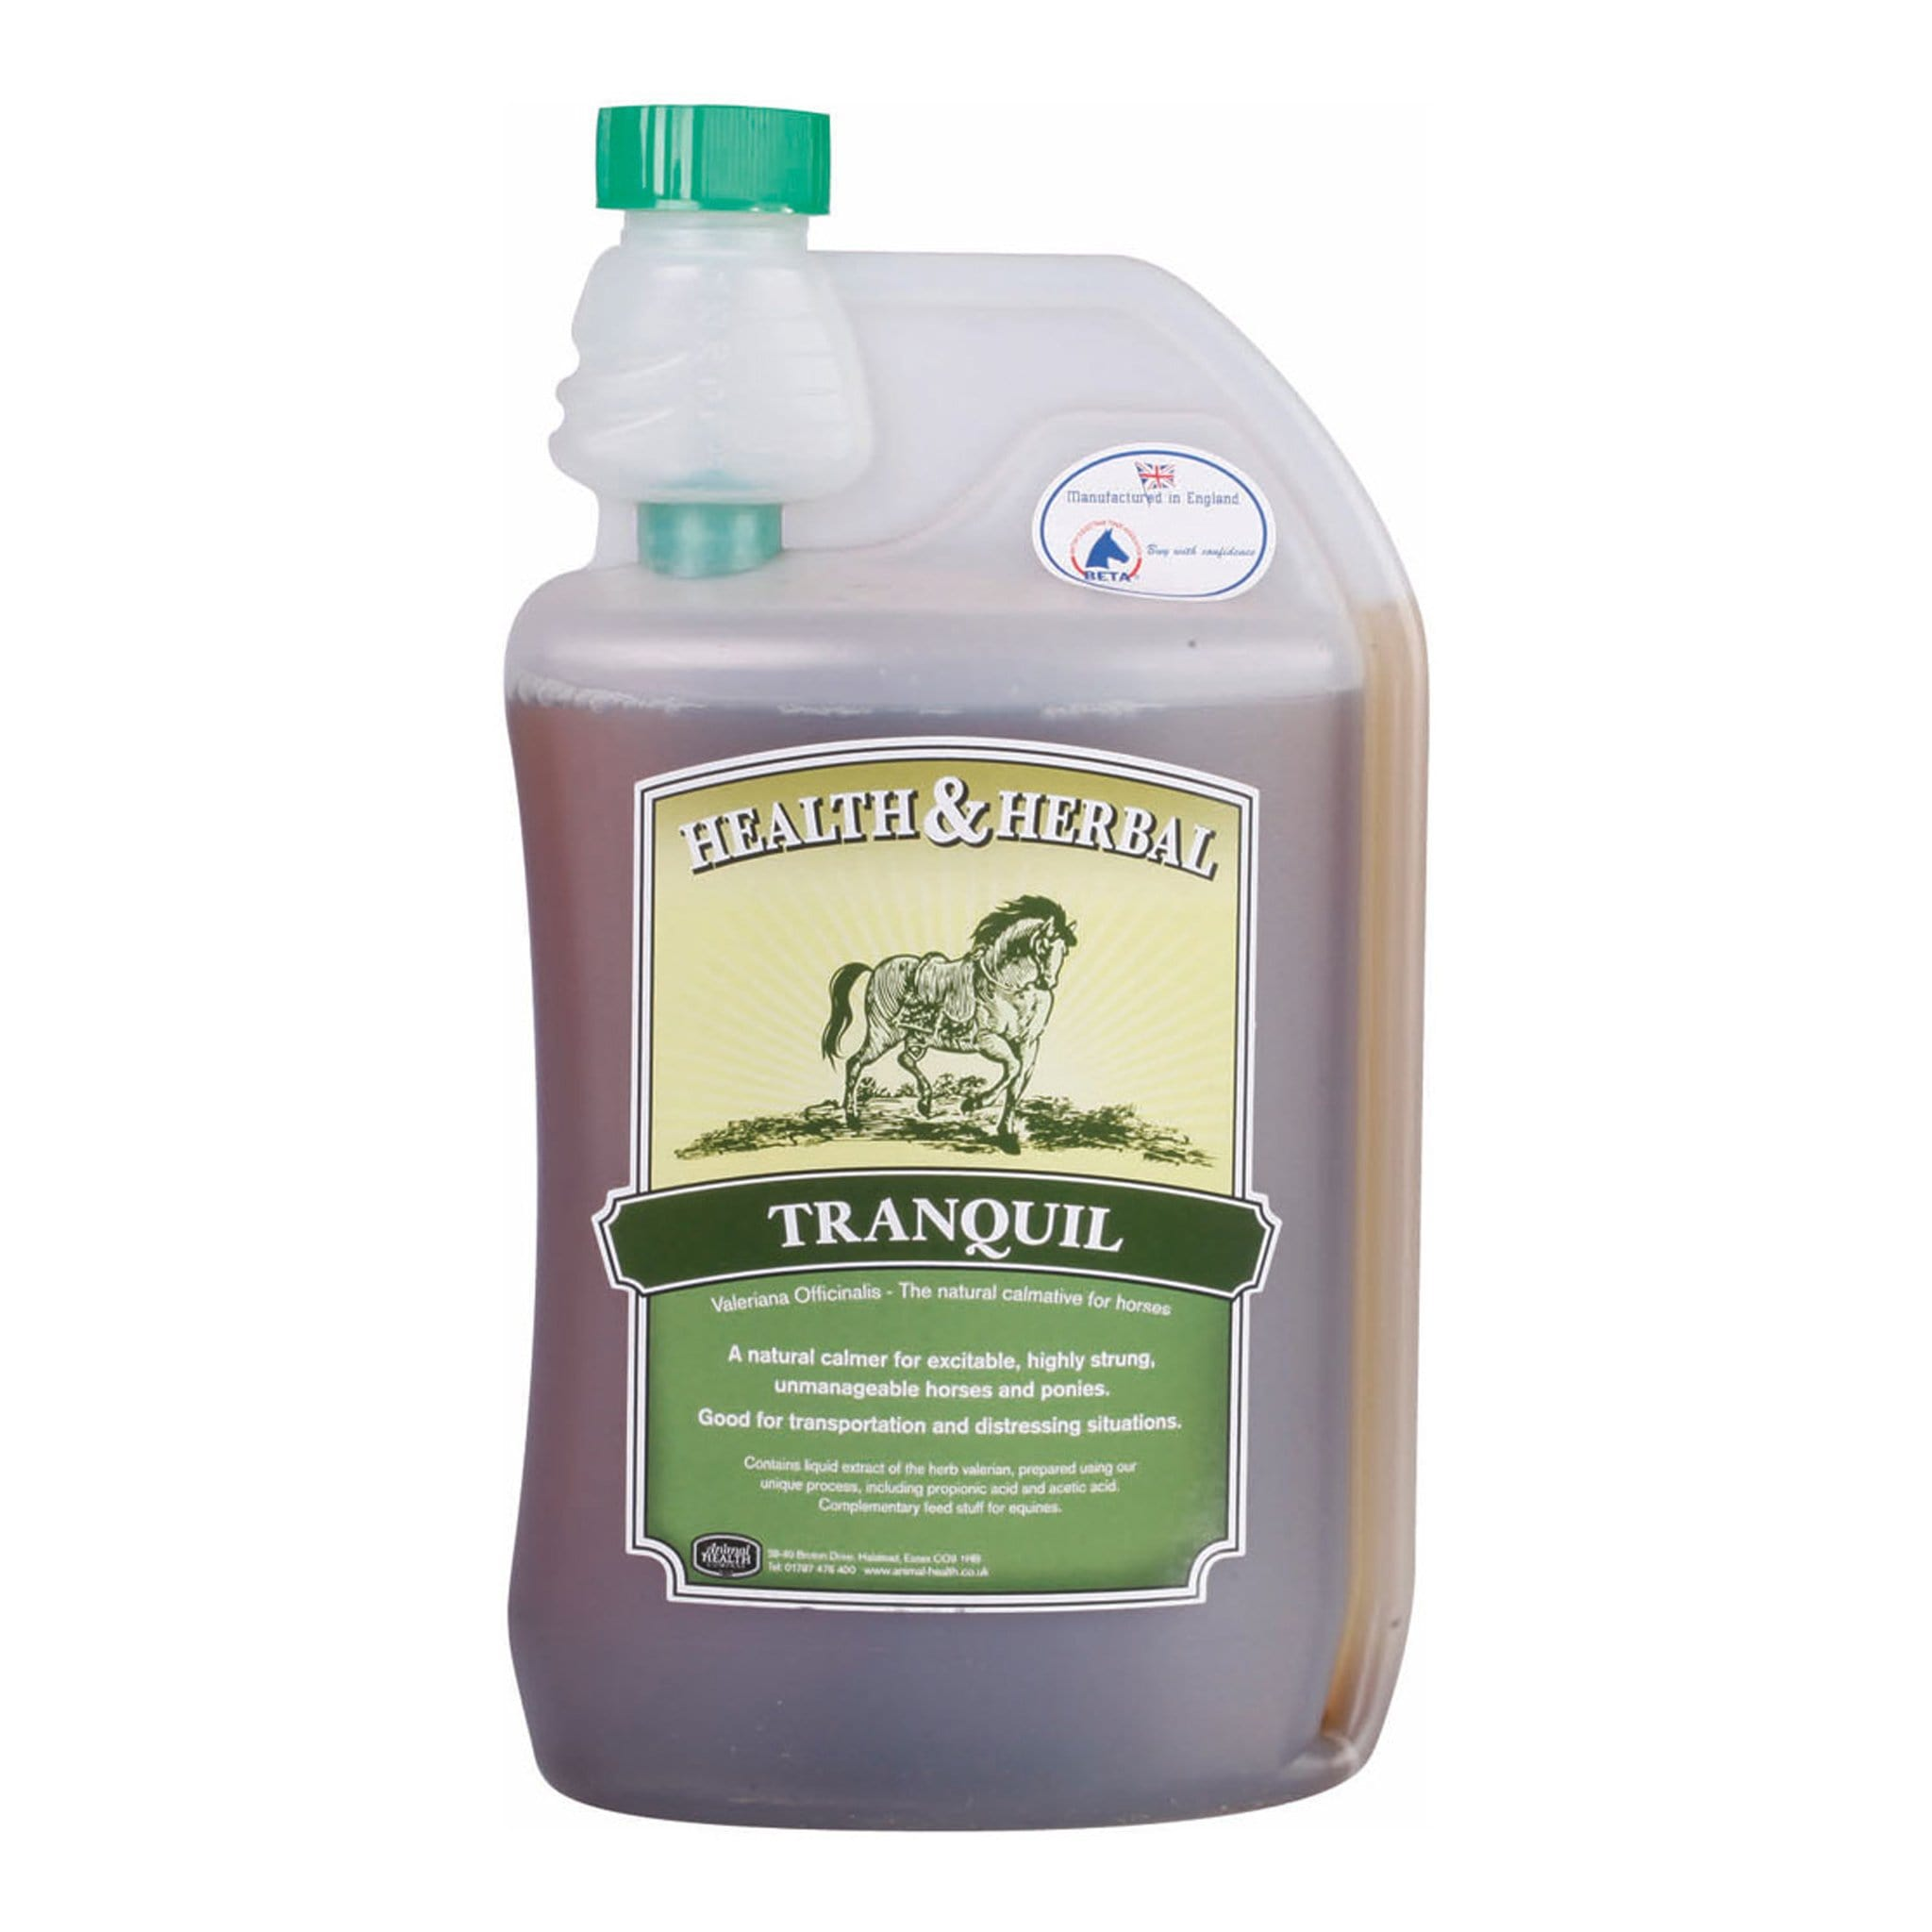 Health And Herbal Tranquil E 1 Litre SPE0039.